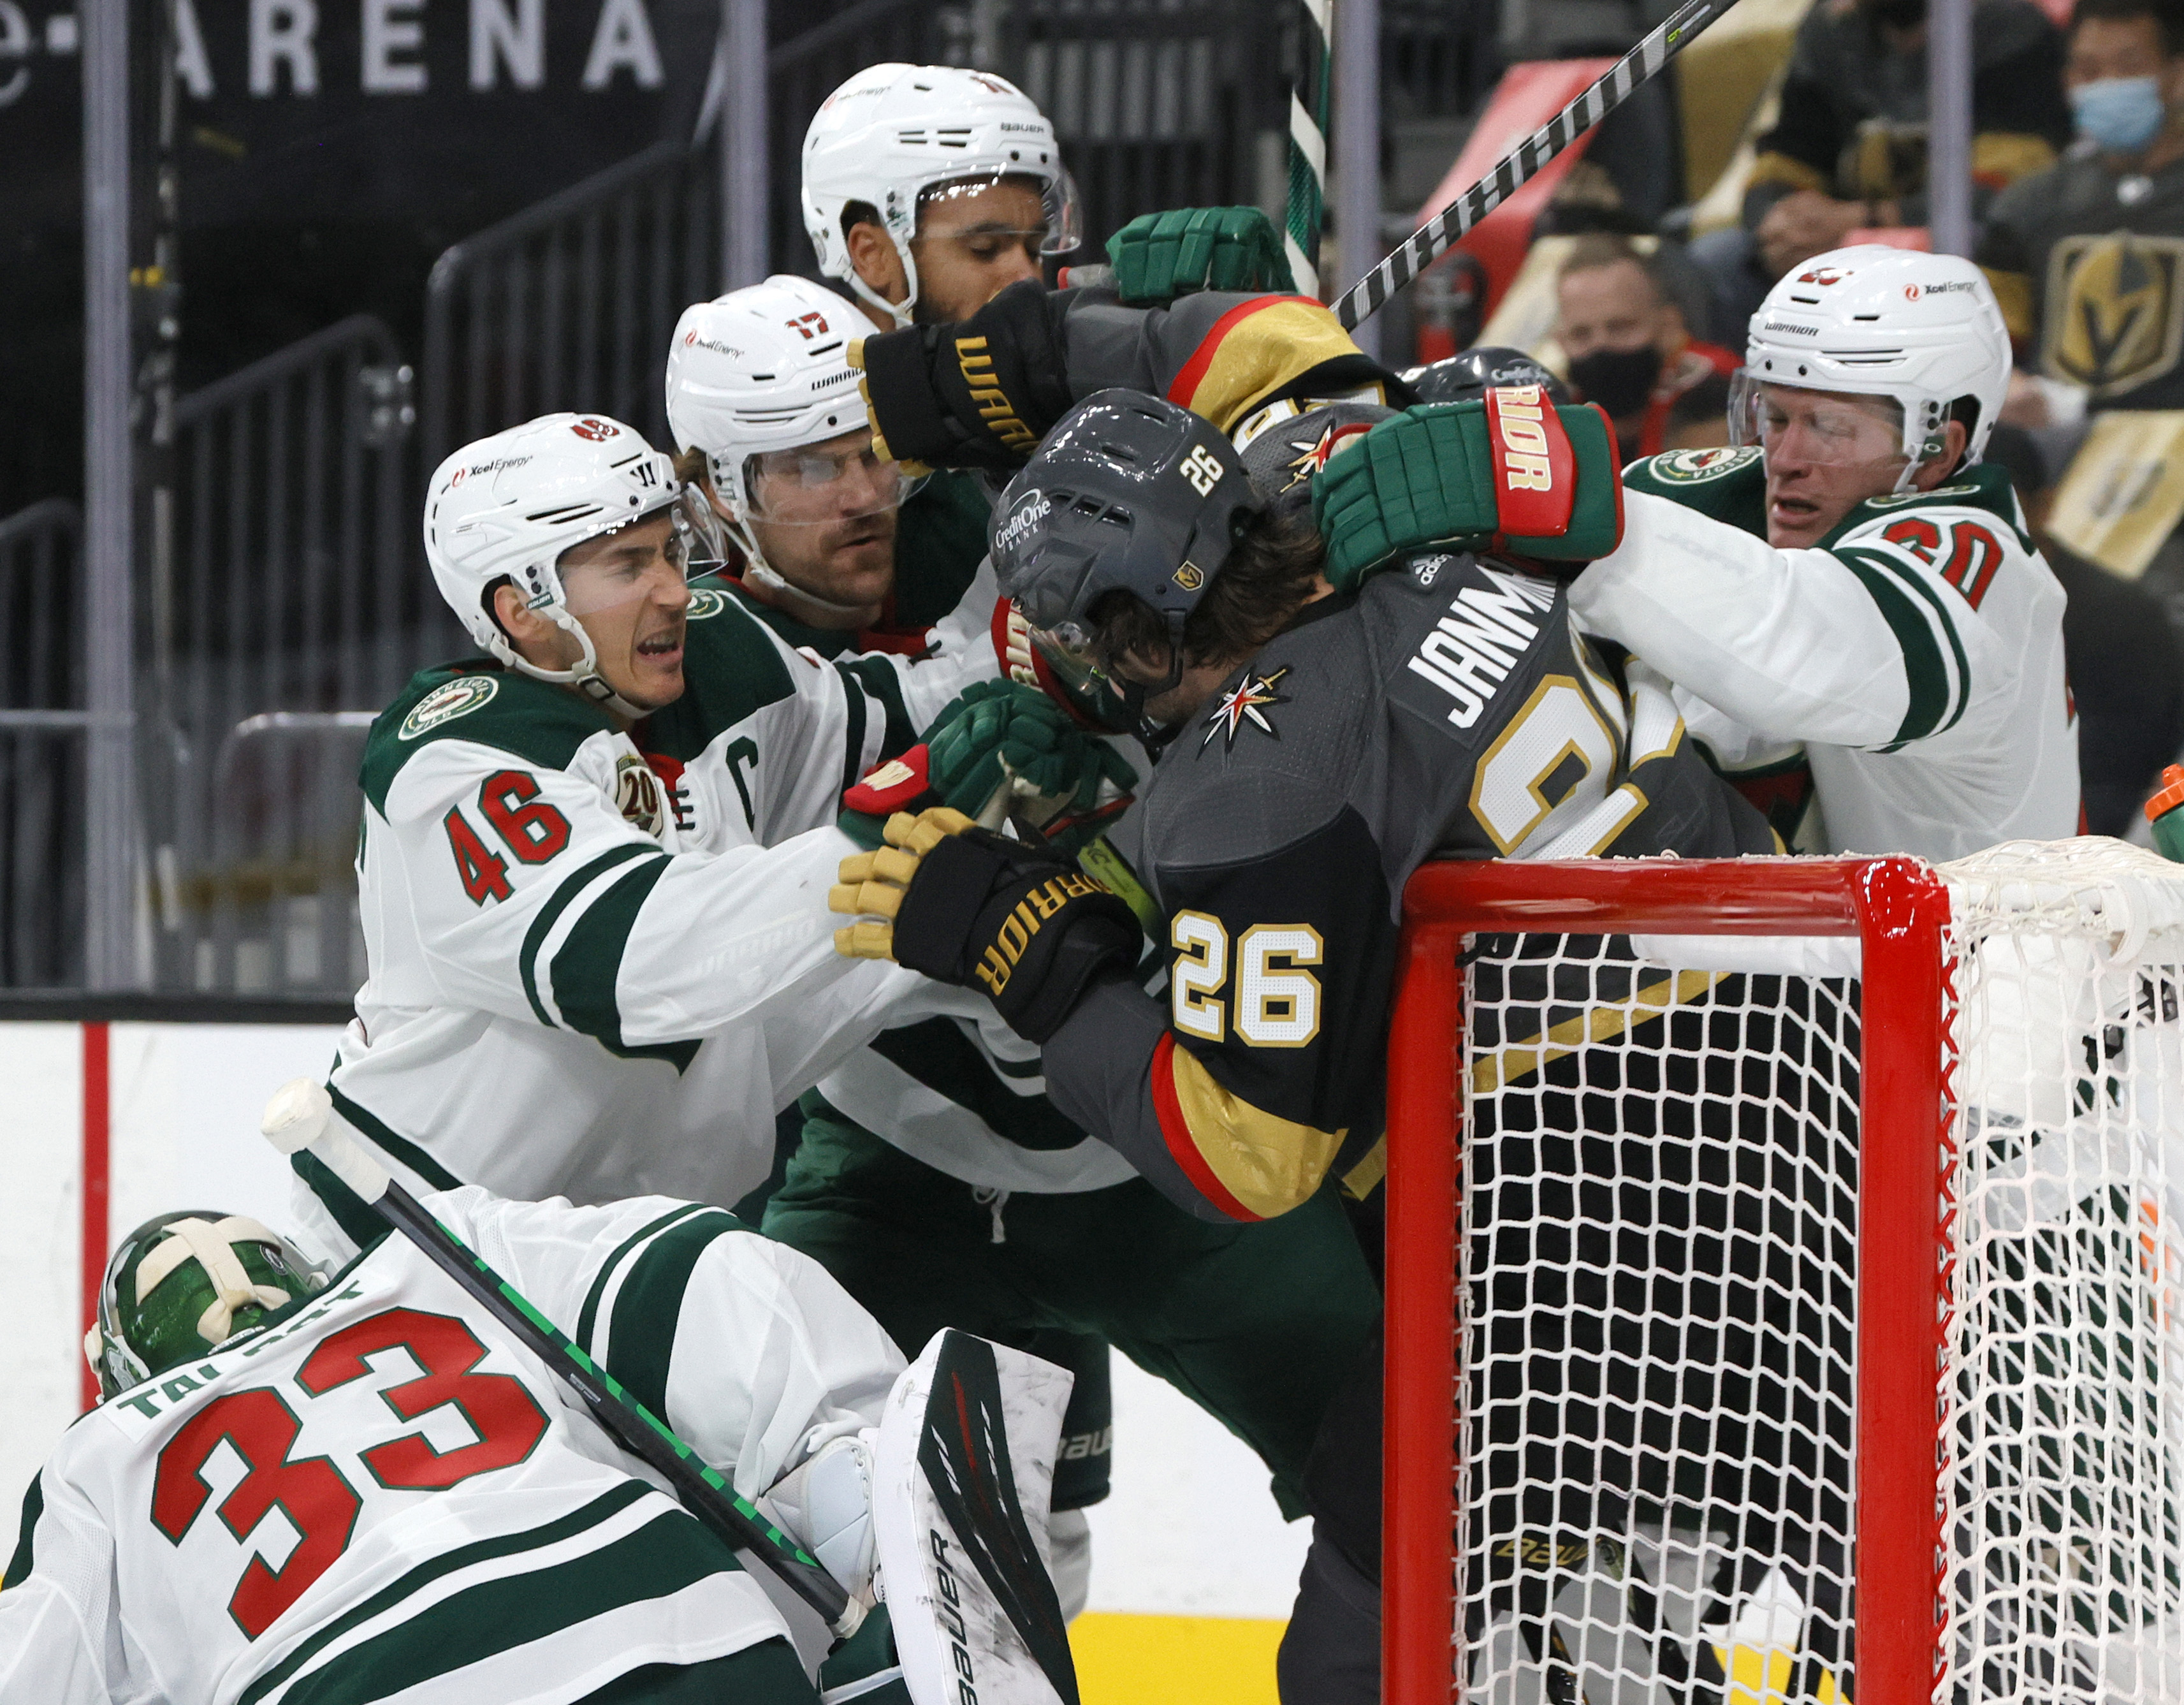 Mattias Janmark #26 of the Vegas Golden Knights is surrounded by Minnesota Wild players during a scrum at the net in the second period in Game Five of the First Round of the 2021 Stanley Cup Playoffs at T-Mobile Arena on May 24, 2021 in Las Vegas, Nevada. The Wild defeated the Golden Knights 4-2.